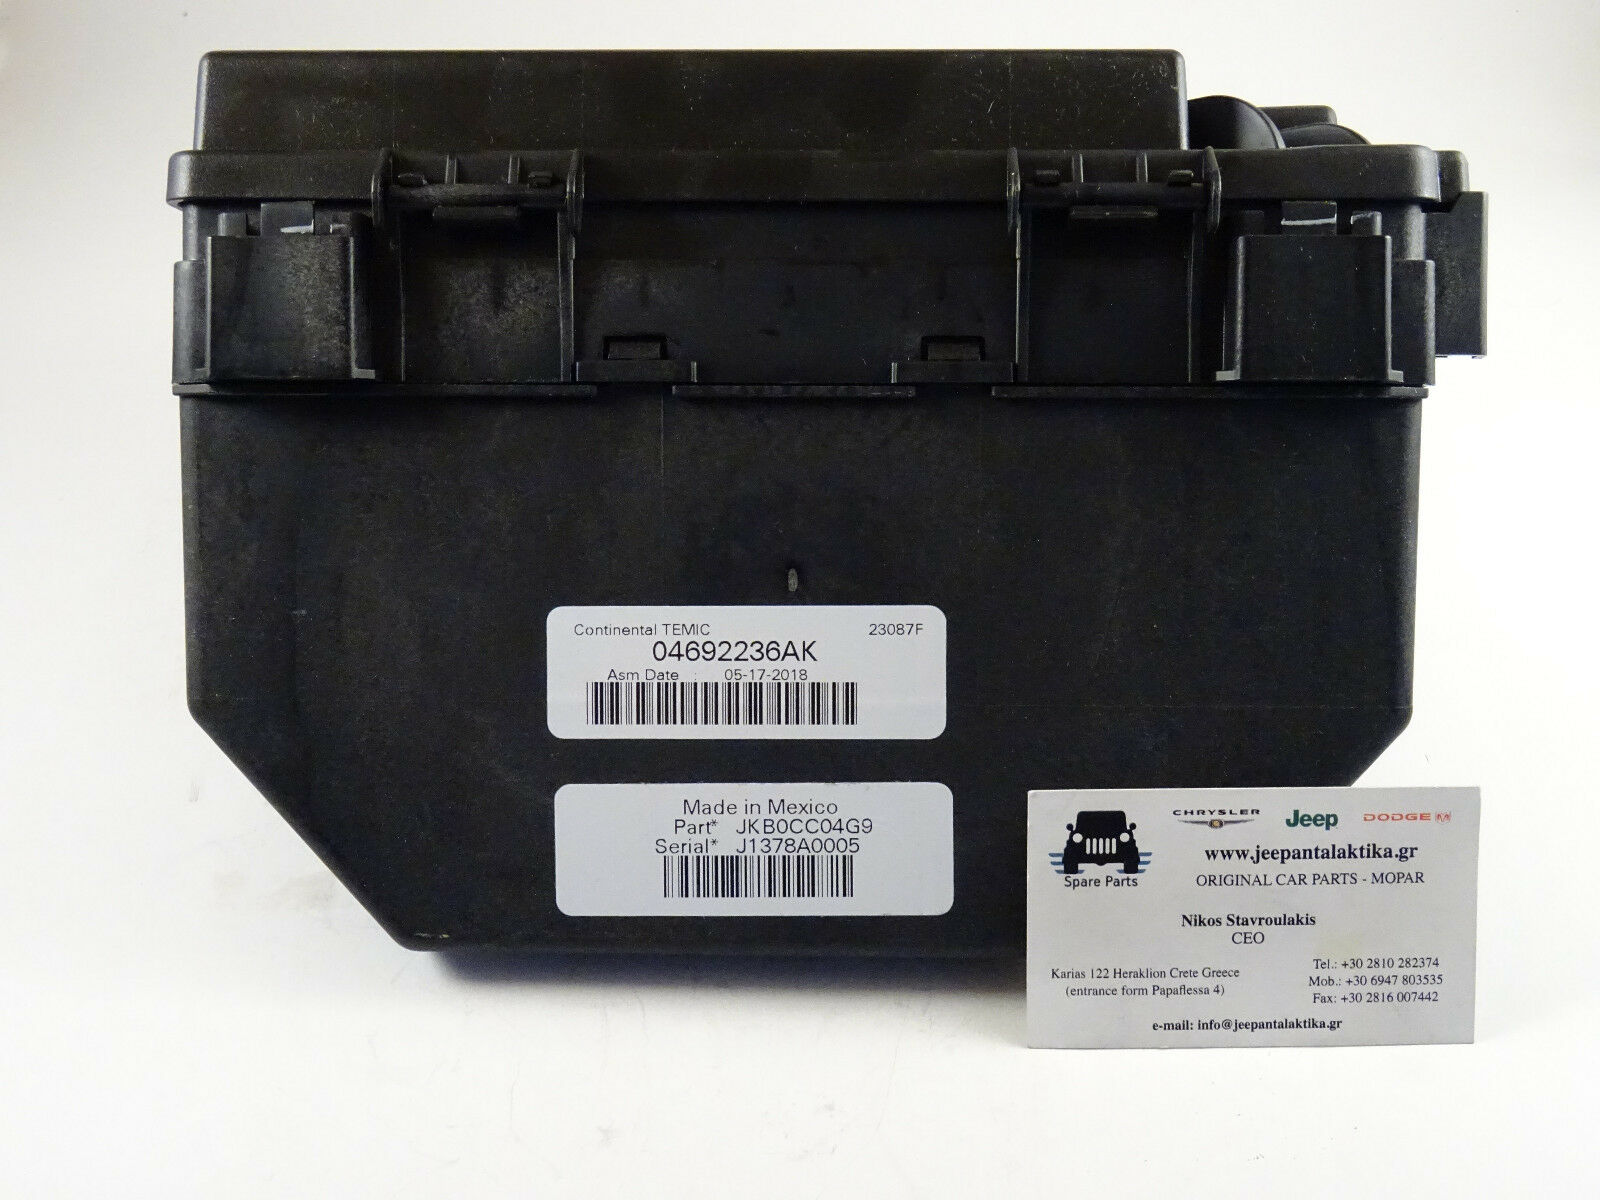 2007 jeep wrangler fuse box location jk wrangler fuse box fuse relay-distribution box jeep wrangler jk 2008 ... #10